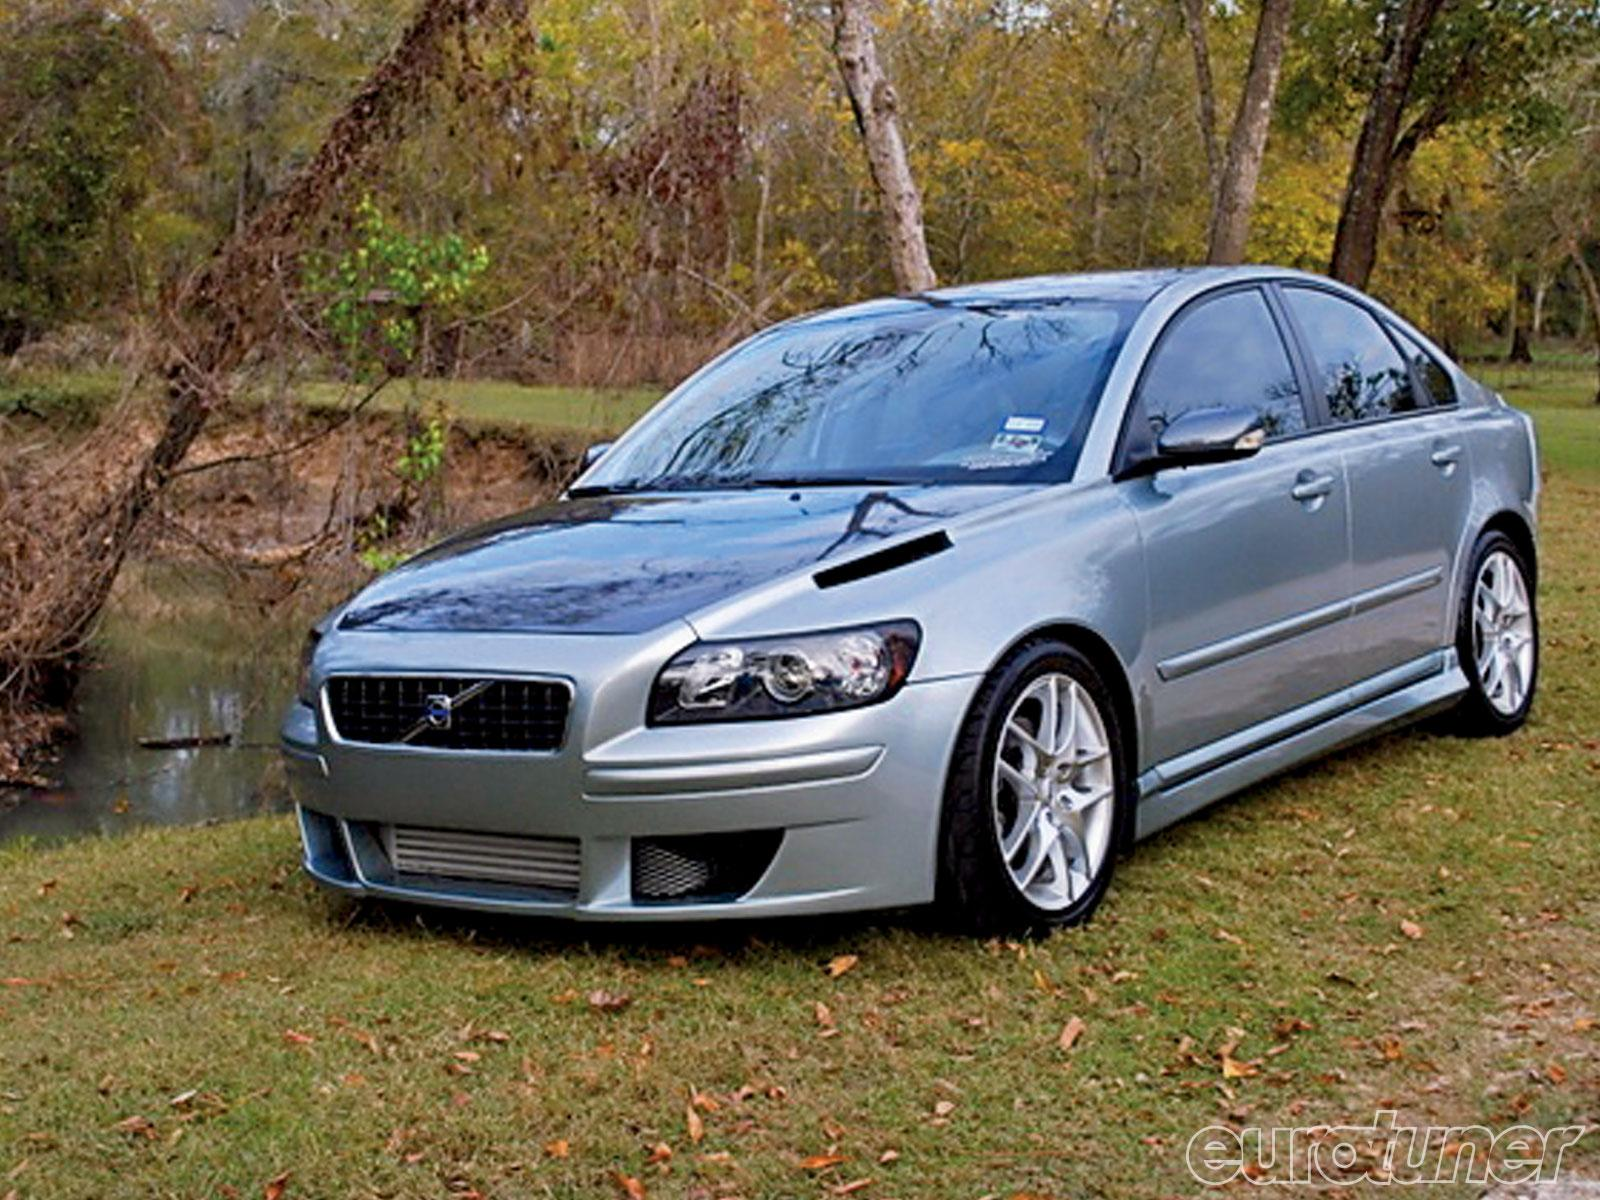 2007 volvo s40 information and photos zombiedrive. Black Bedroom Furniture Sets. Home Design Ideas